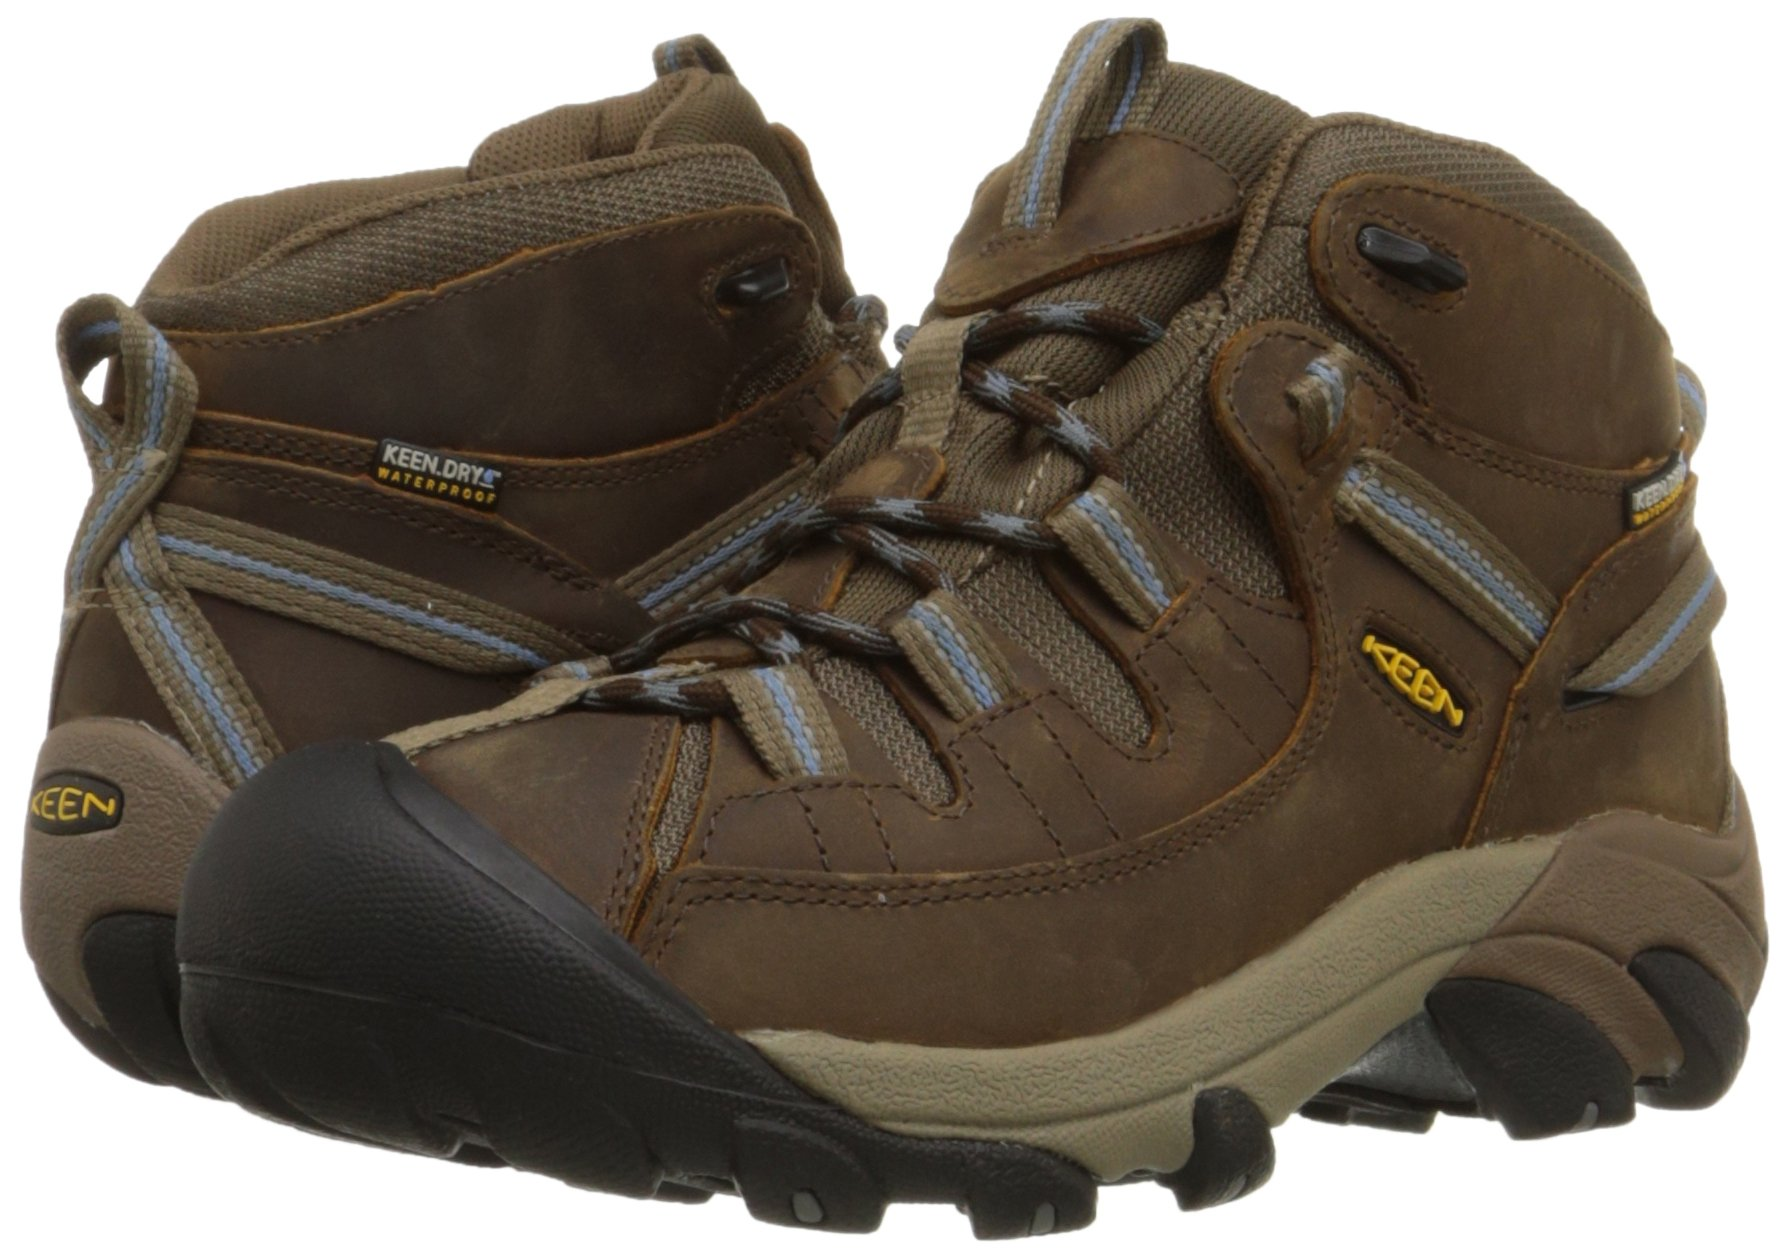 KEEN Women's Targhee II Mid Waterproof Hiking Boot,Slate Black/Flint Stone,8.5 M US by KEEN (Image #6)